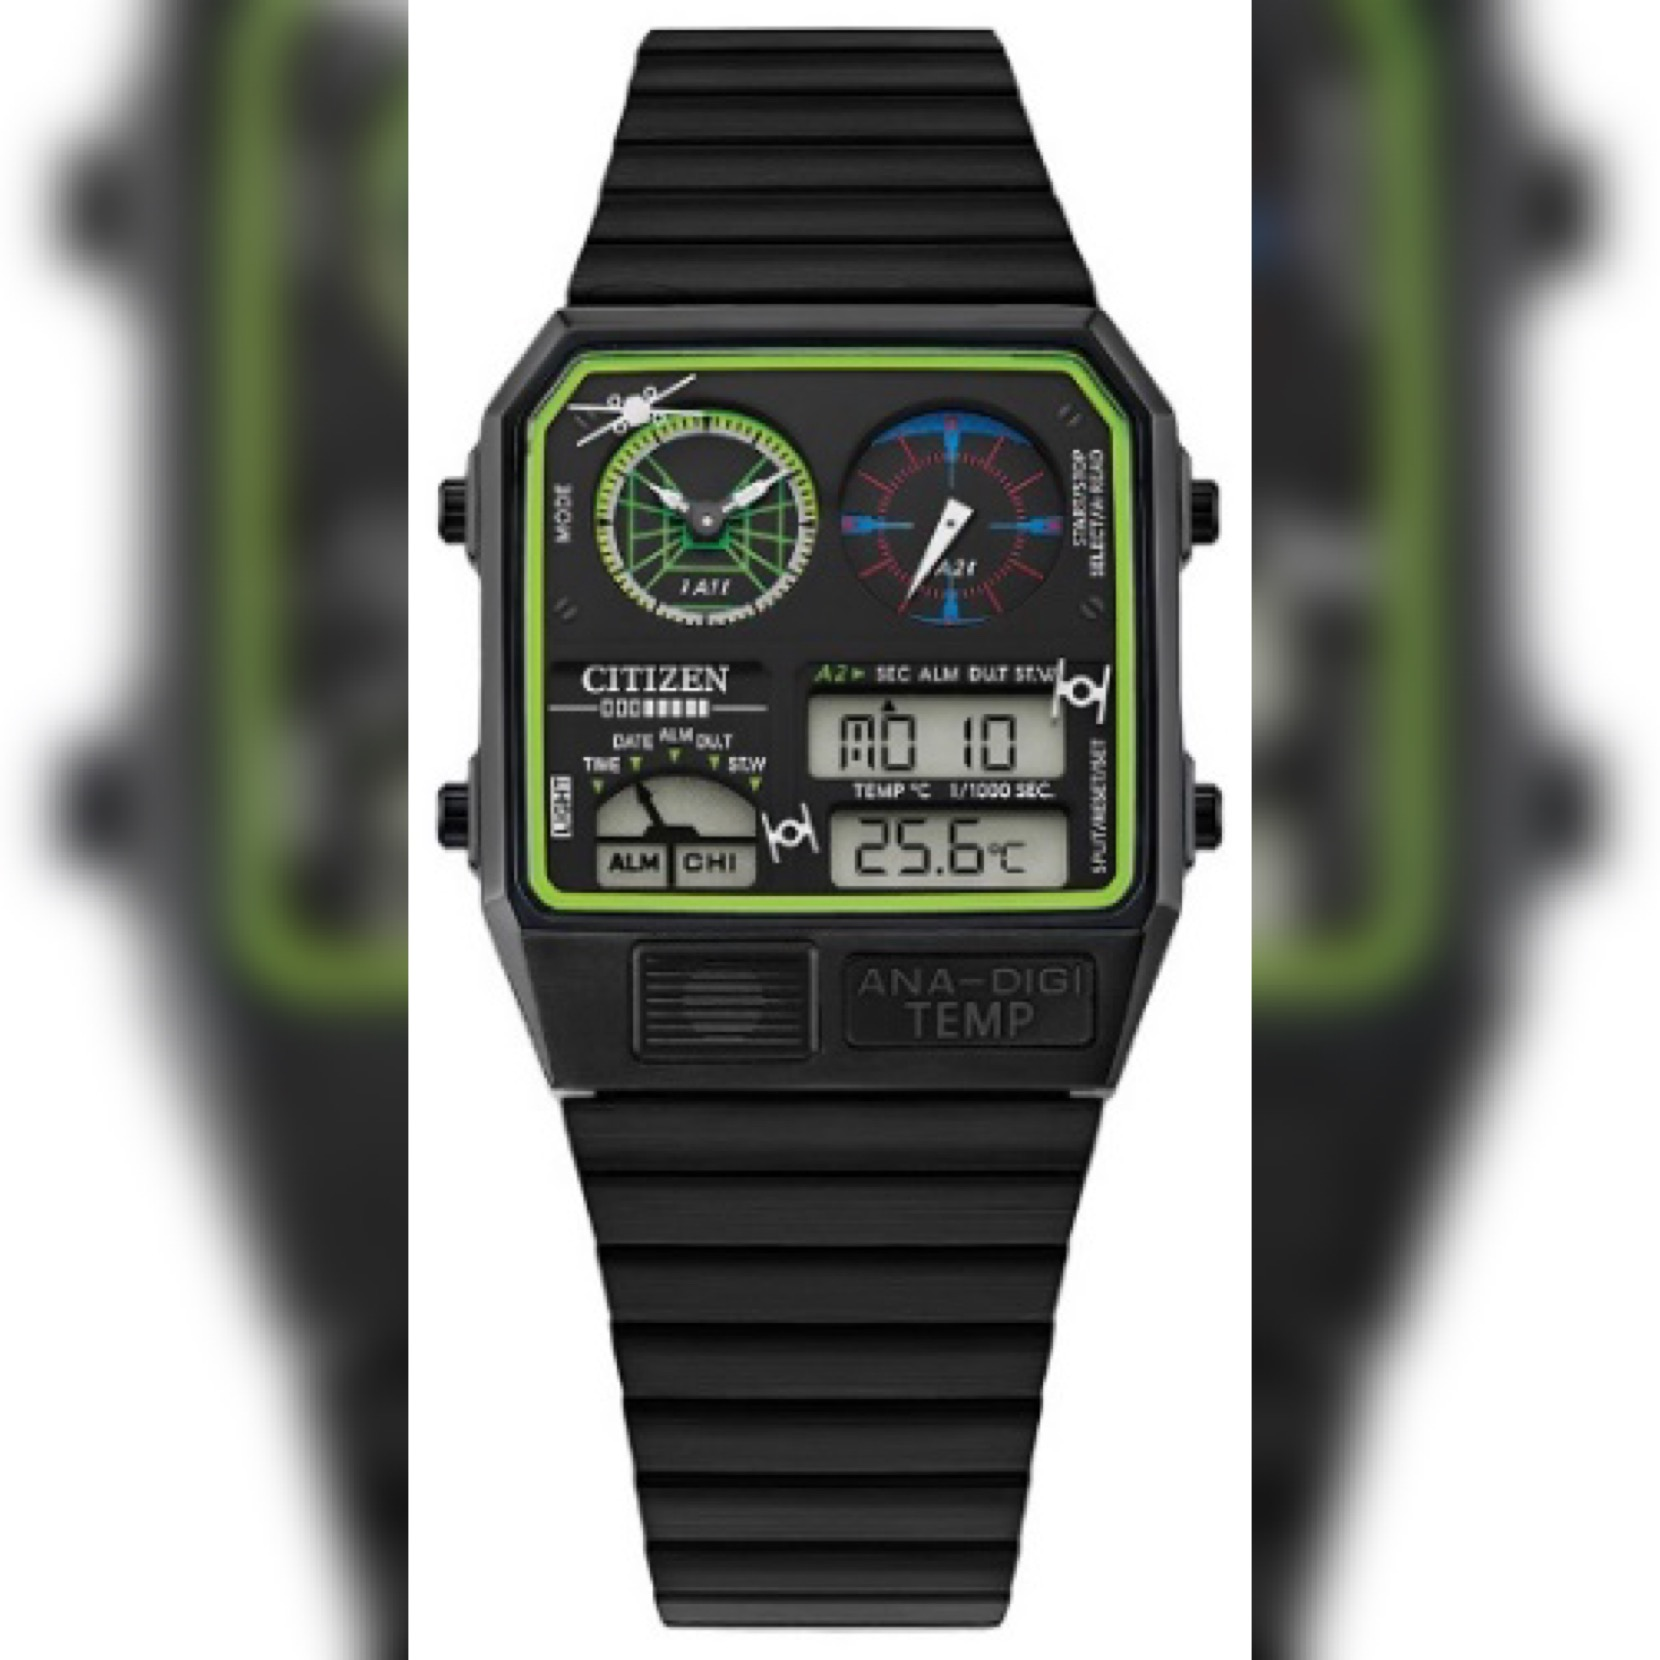 Trench Run themed watch by Citizen in collaboration by Star Wars via KINNEY + KINSELLA for use by 360 Magazine